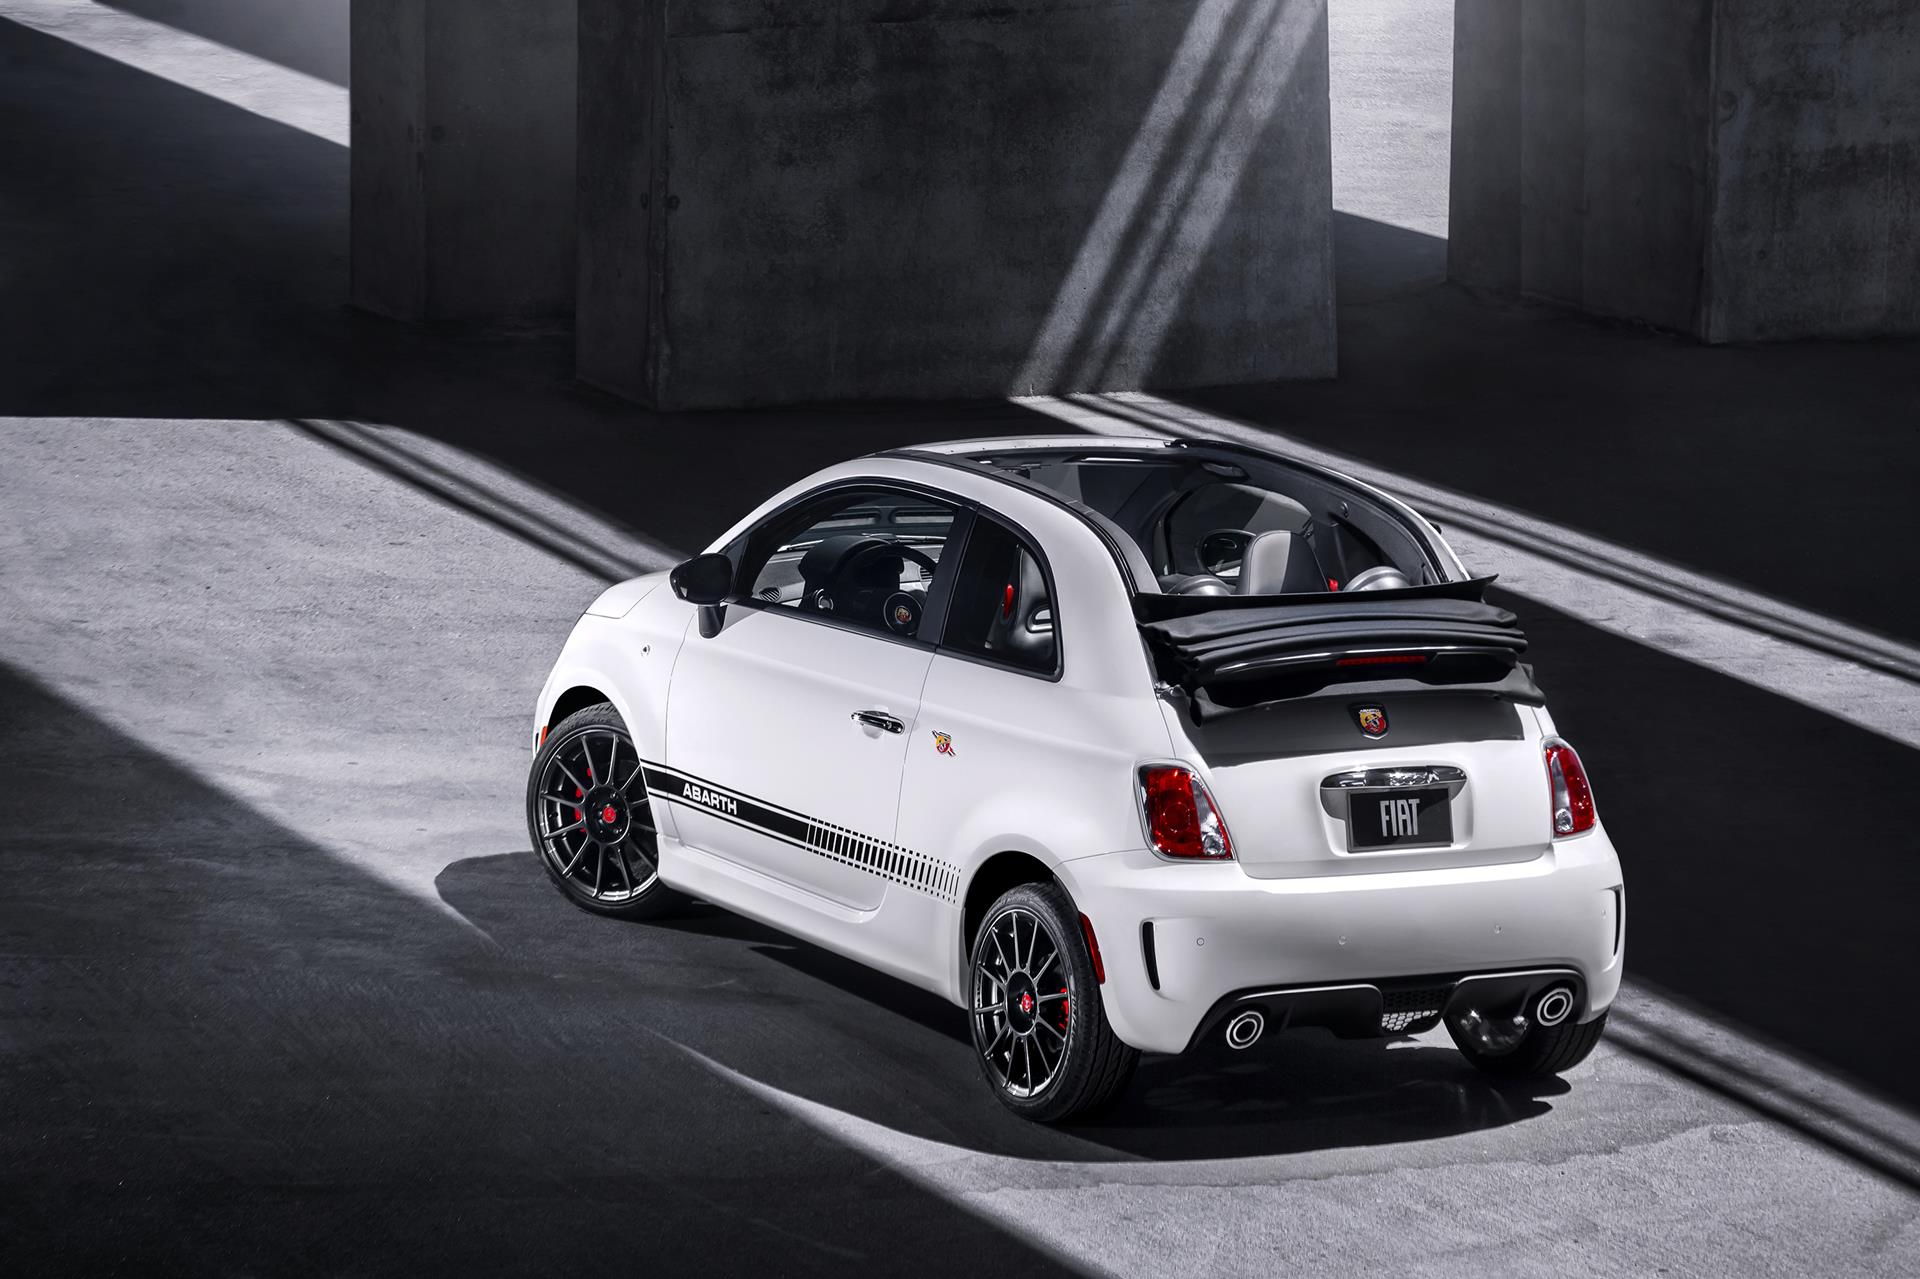 2016 fiat 500 abarth images photo 2016 fiat abarth 500. Black Bedroom Furniture Sets. Home Design Ideas